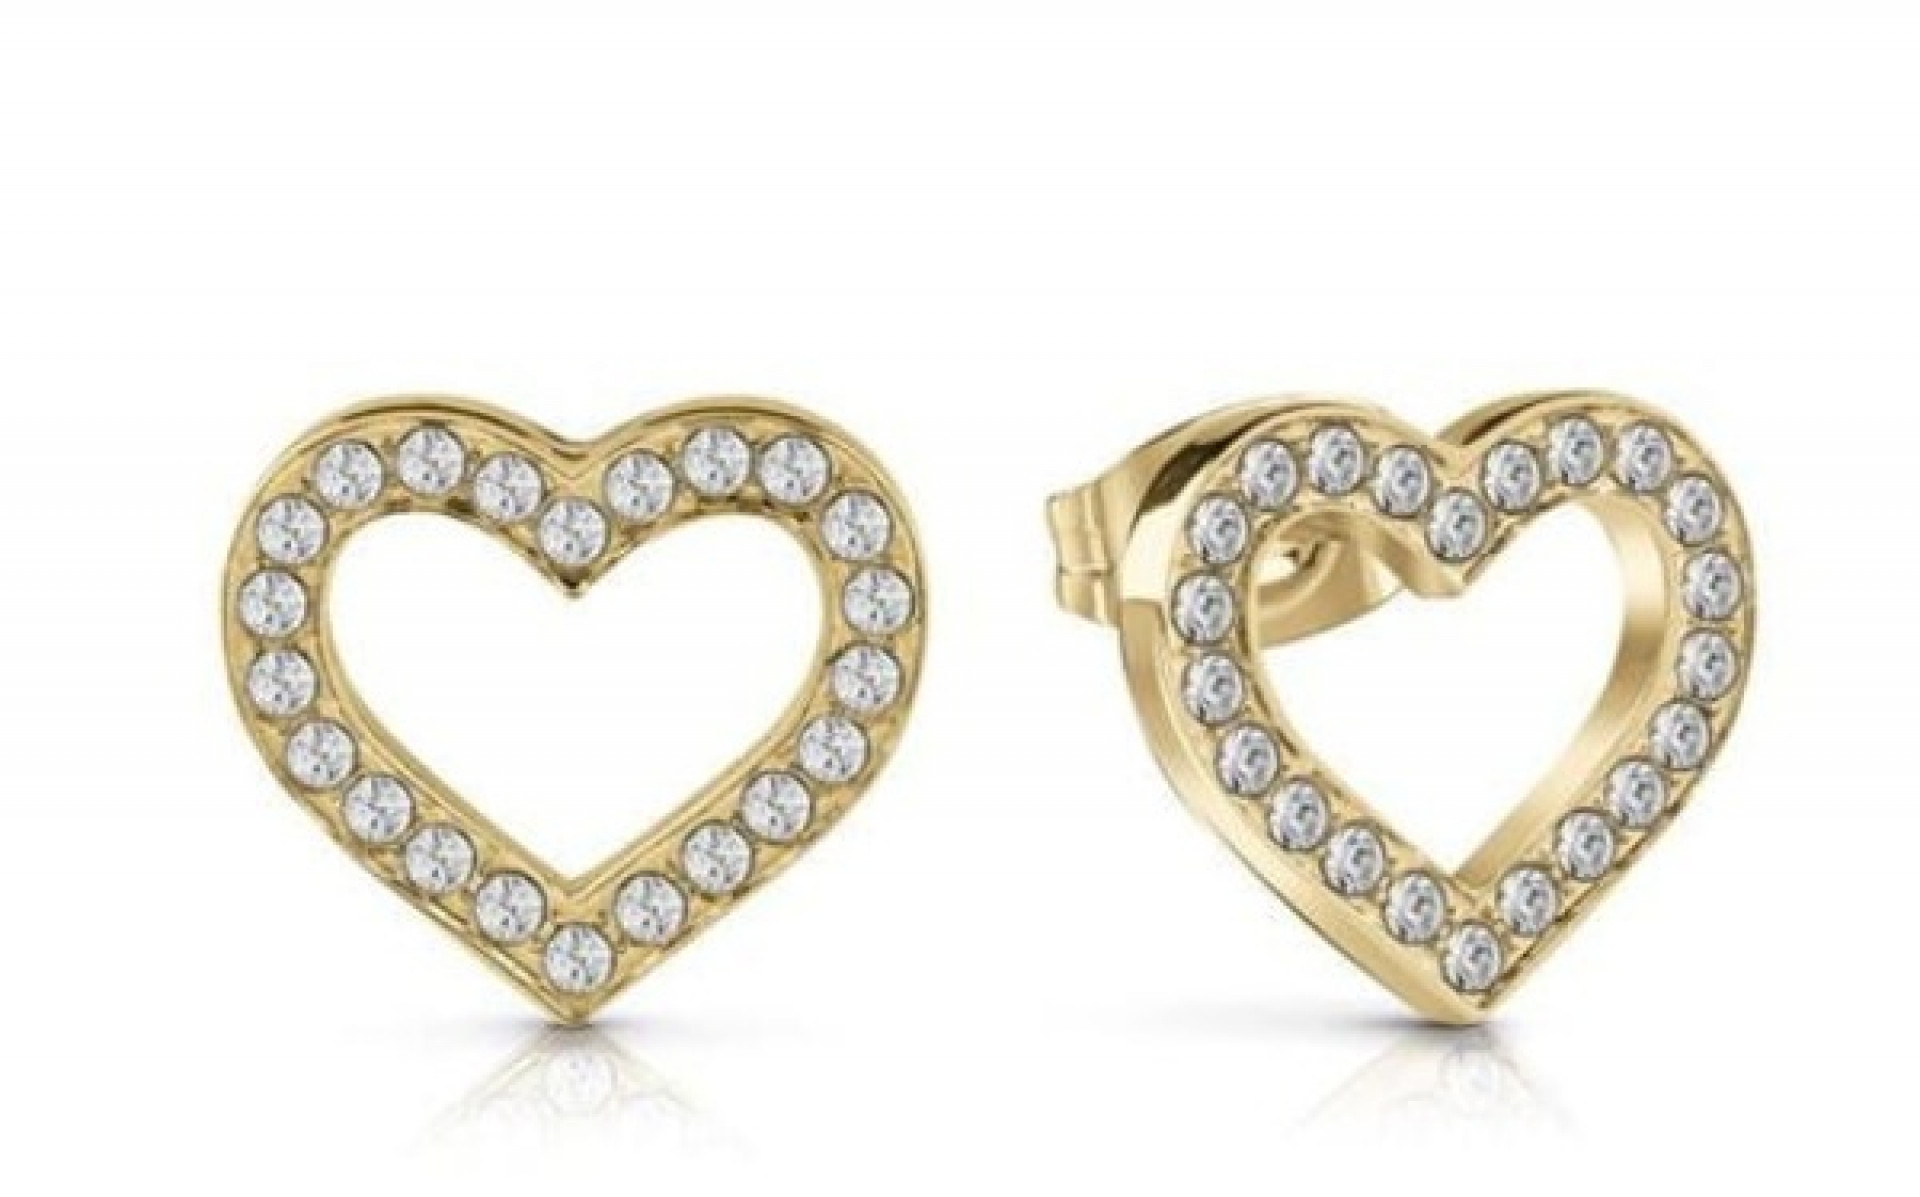 GUESS gold plated heart earrings